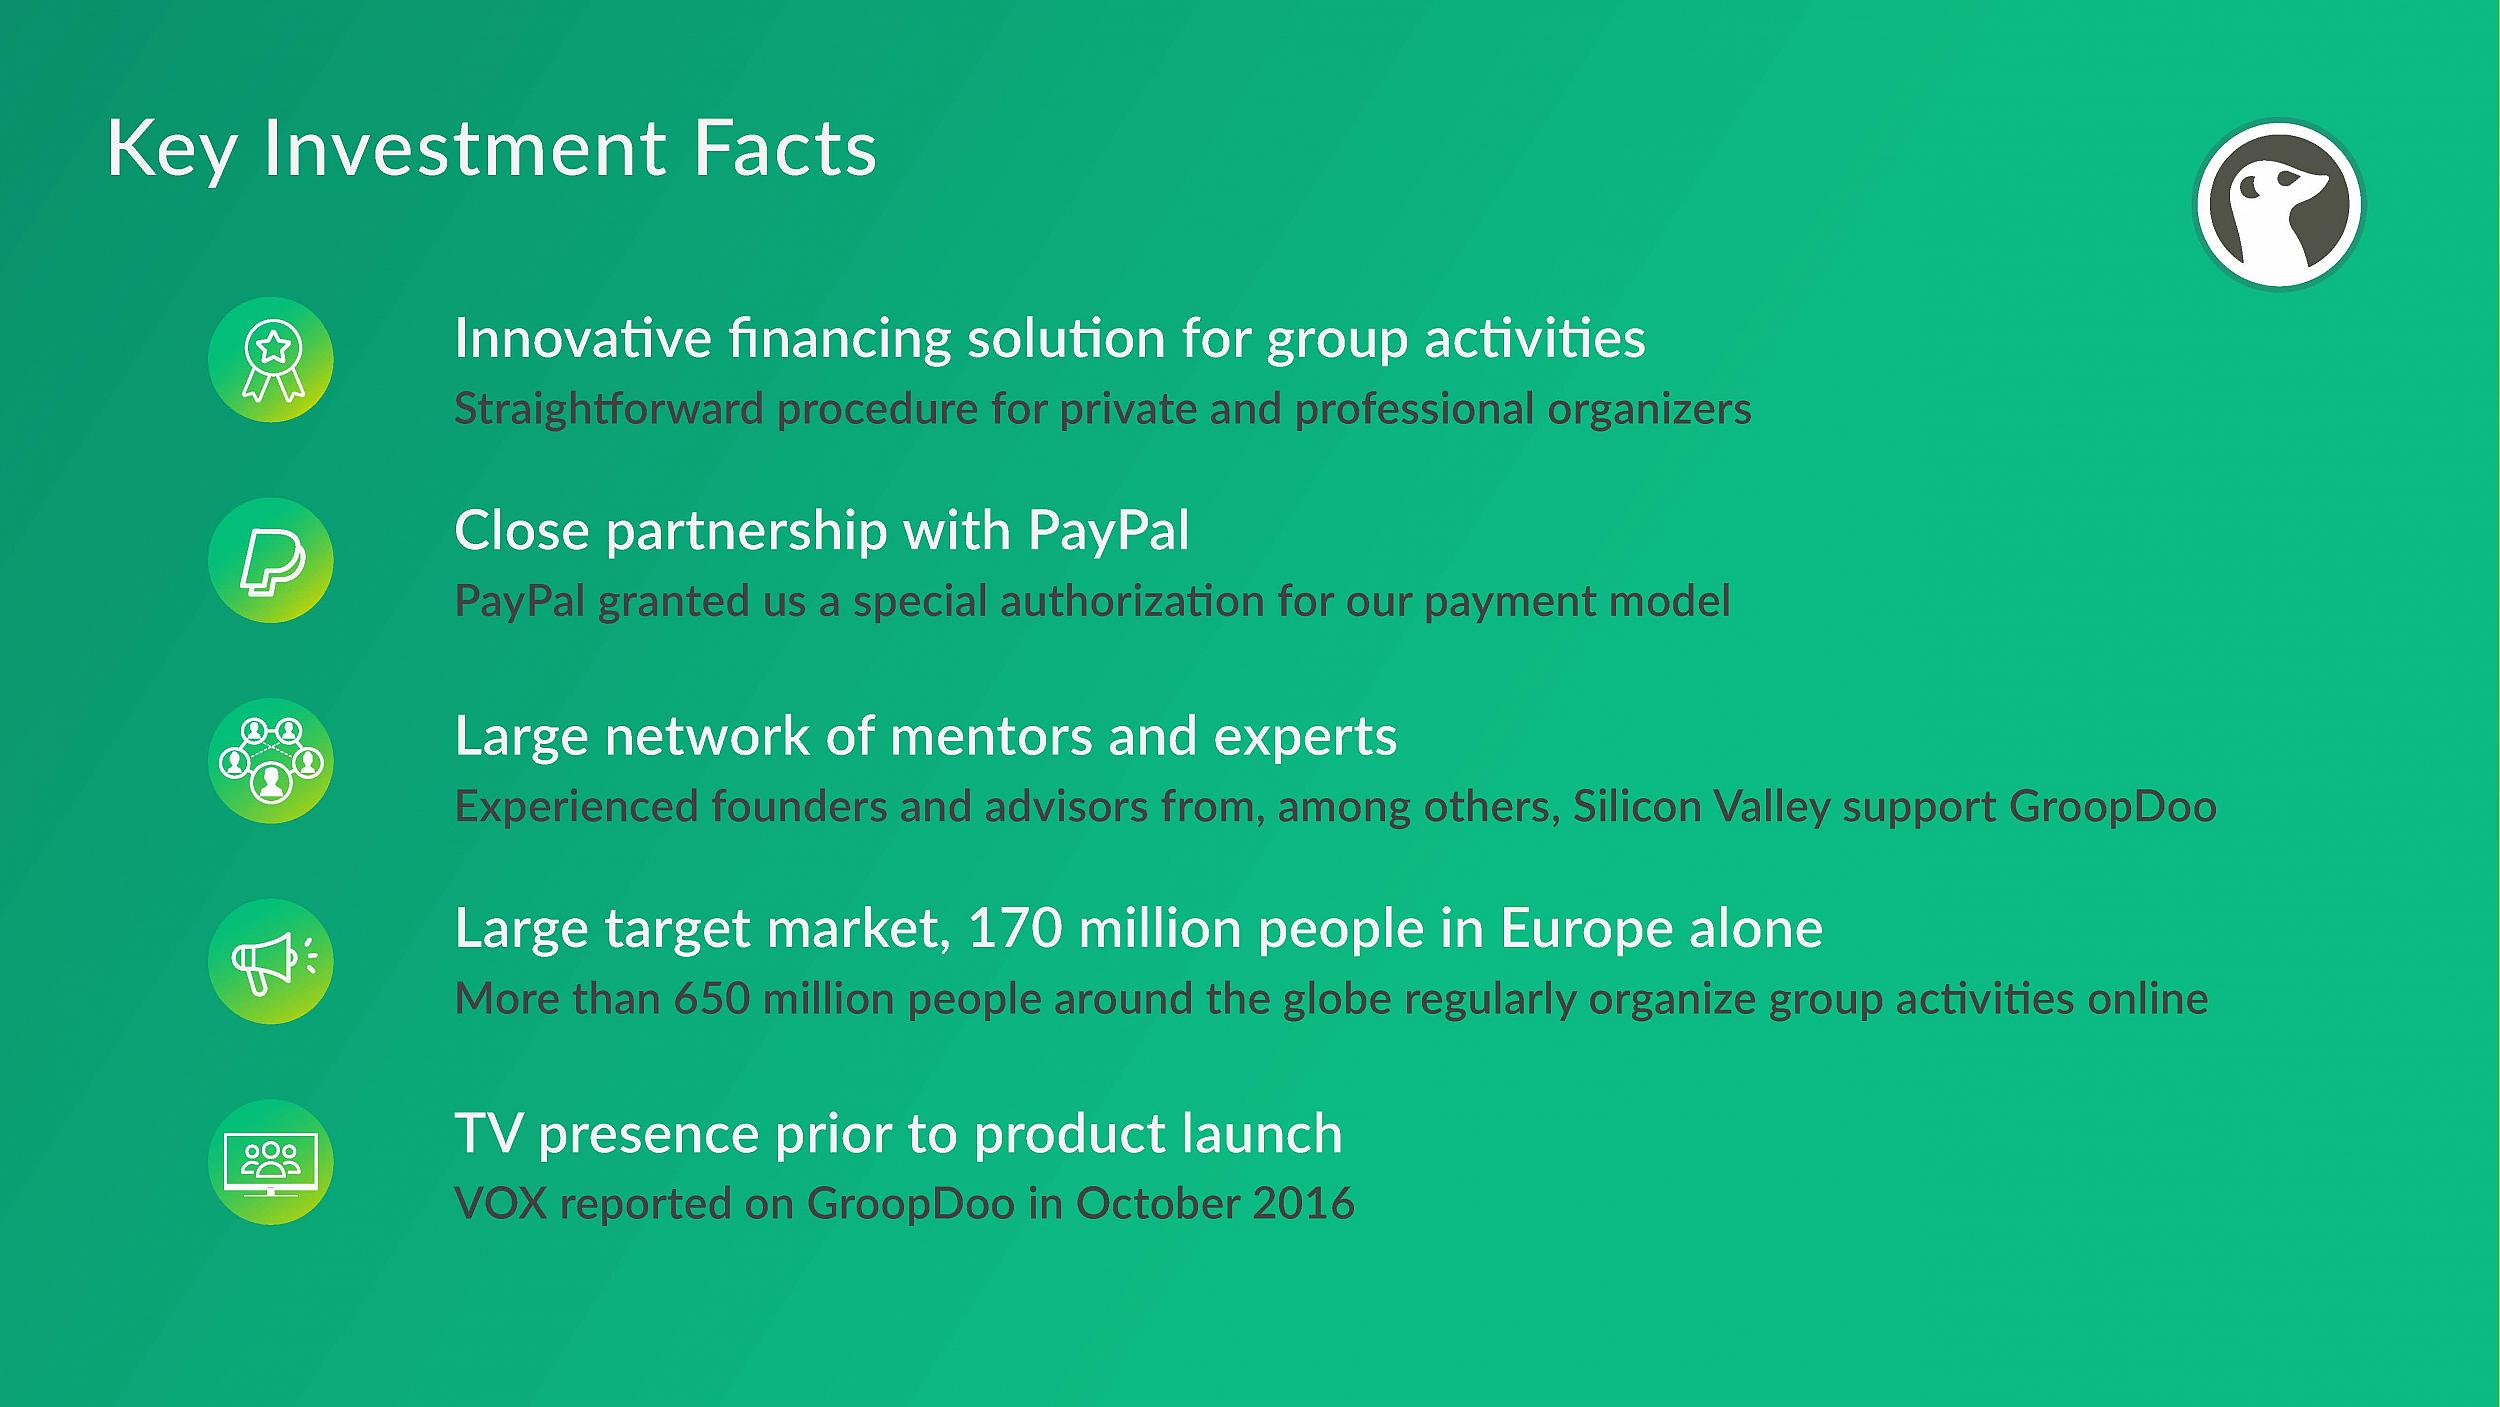 GroopDoo - Key Investment Facts